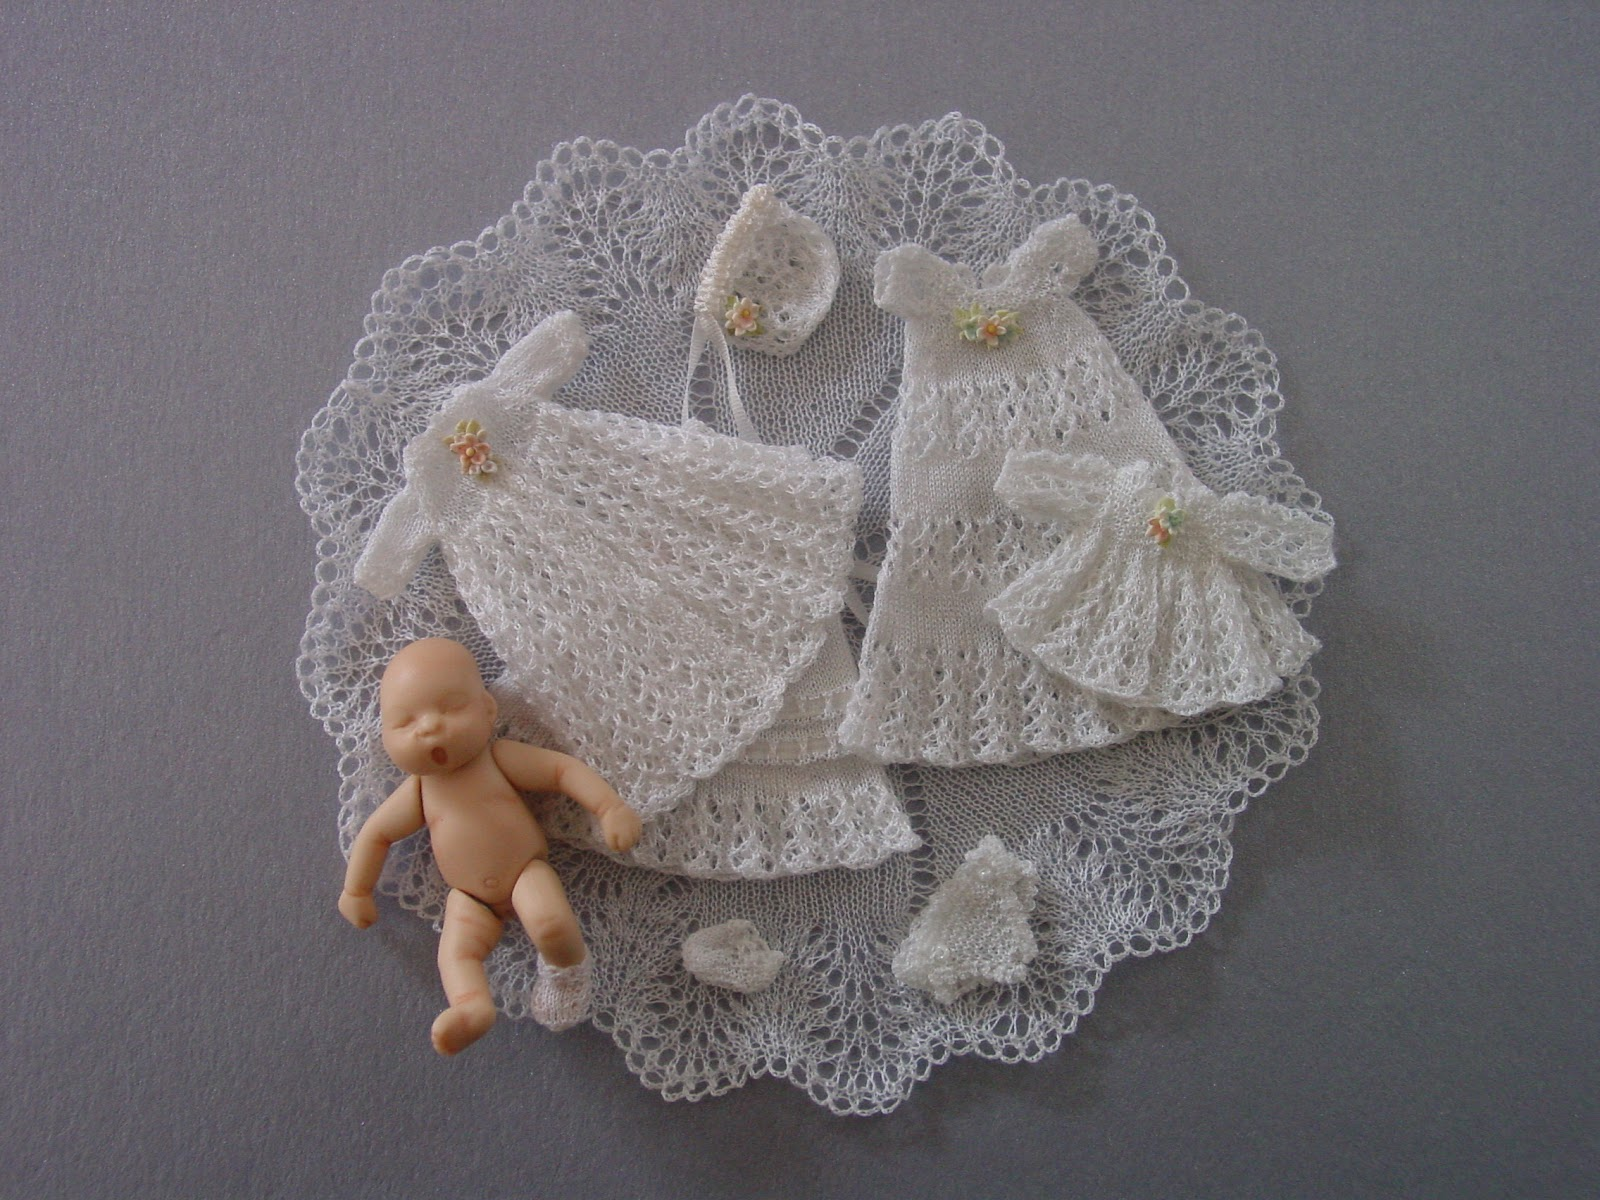 Chrystals Designs: Miniature Knitting Patterns Belly Button Baby